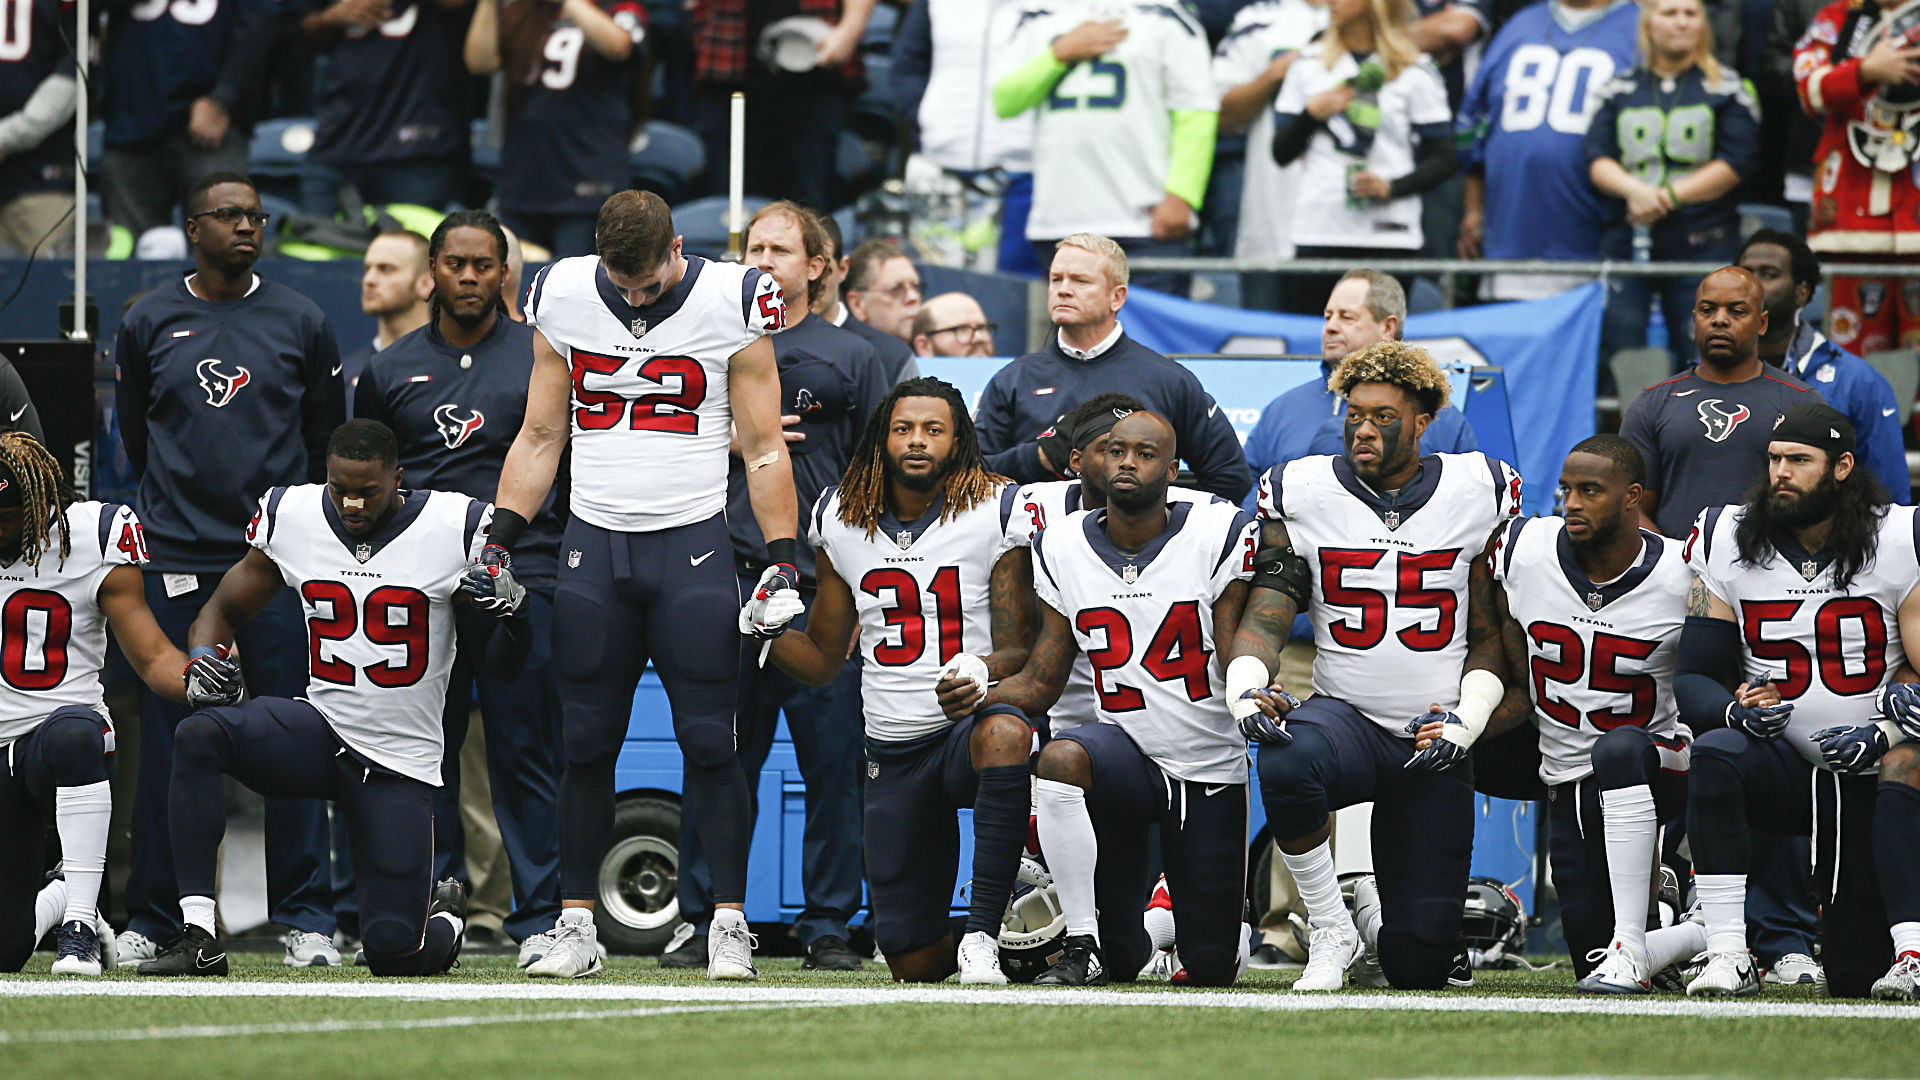 Bob McNair's insults, Texans' kneeldown change protest game for good